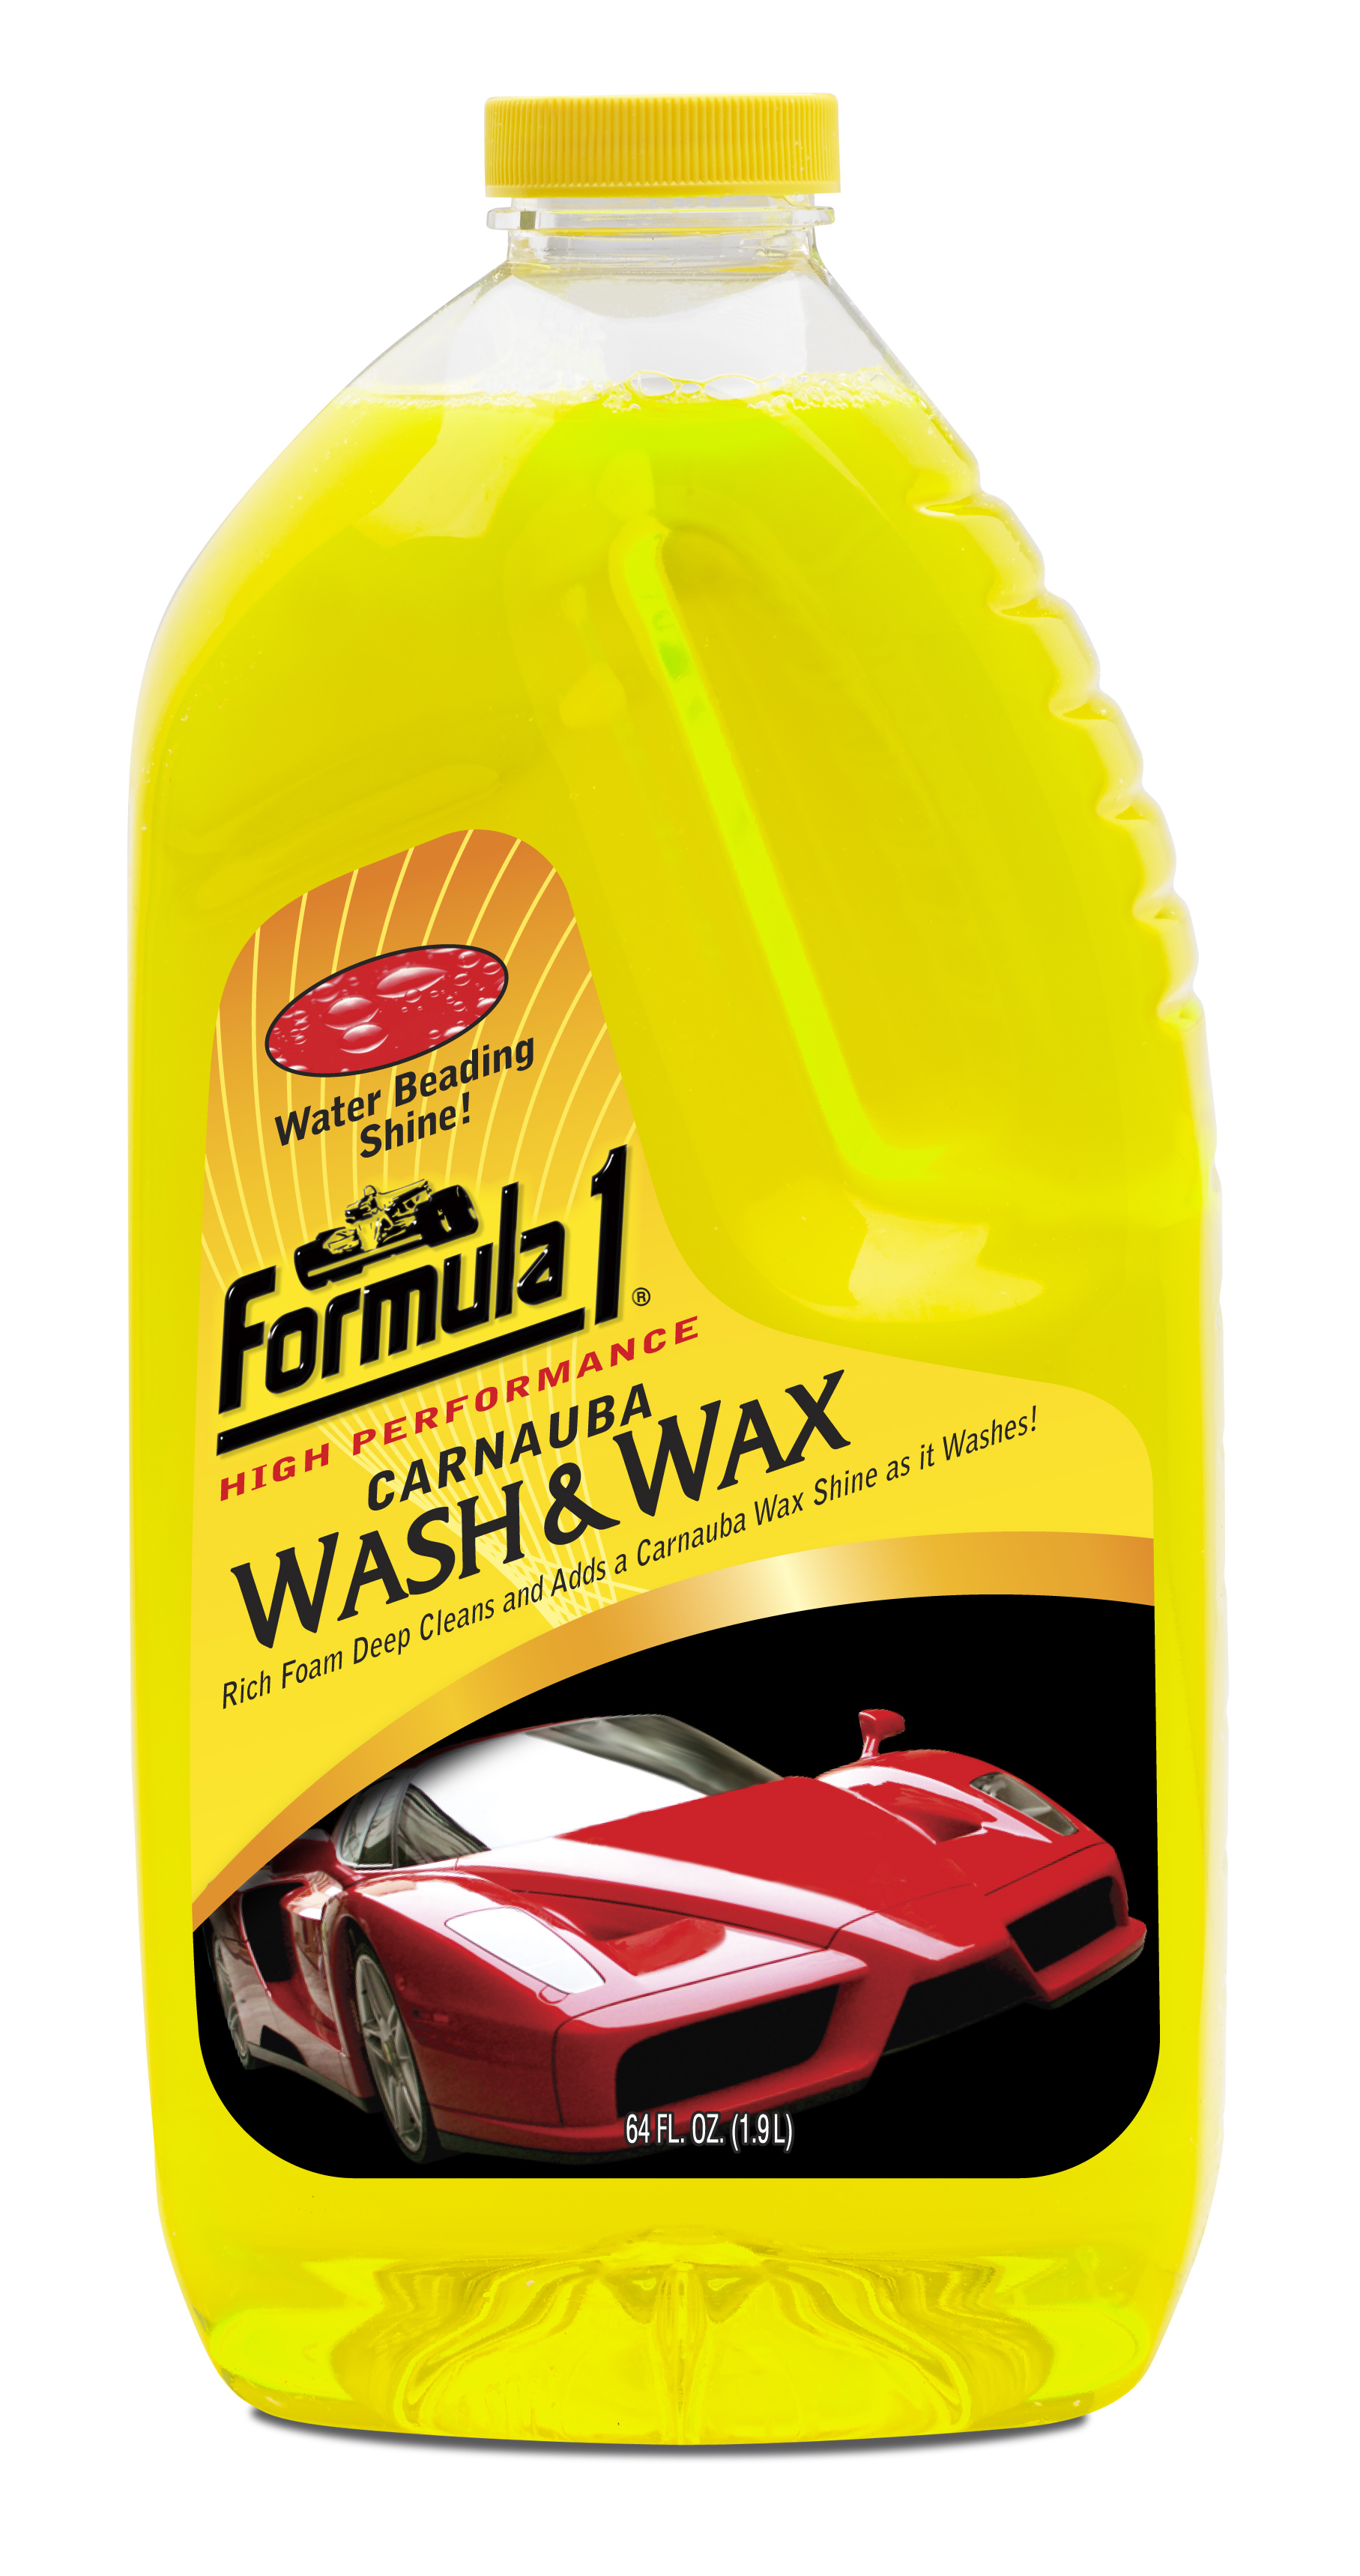 Wash and Wax 64 oz Image